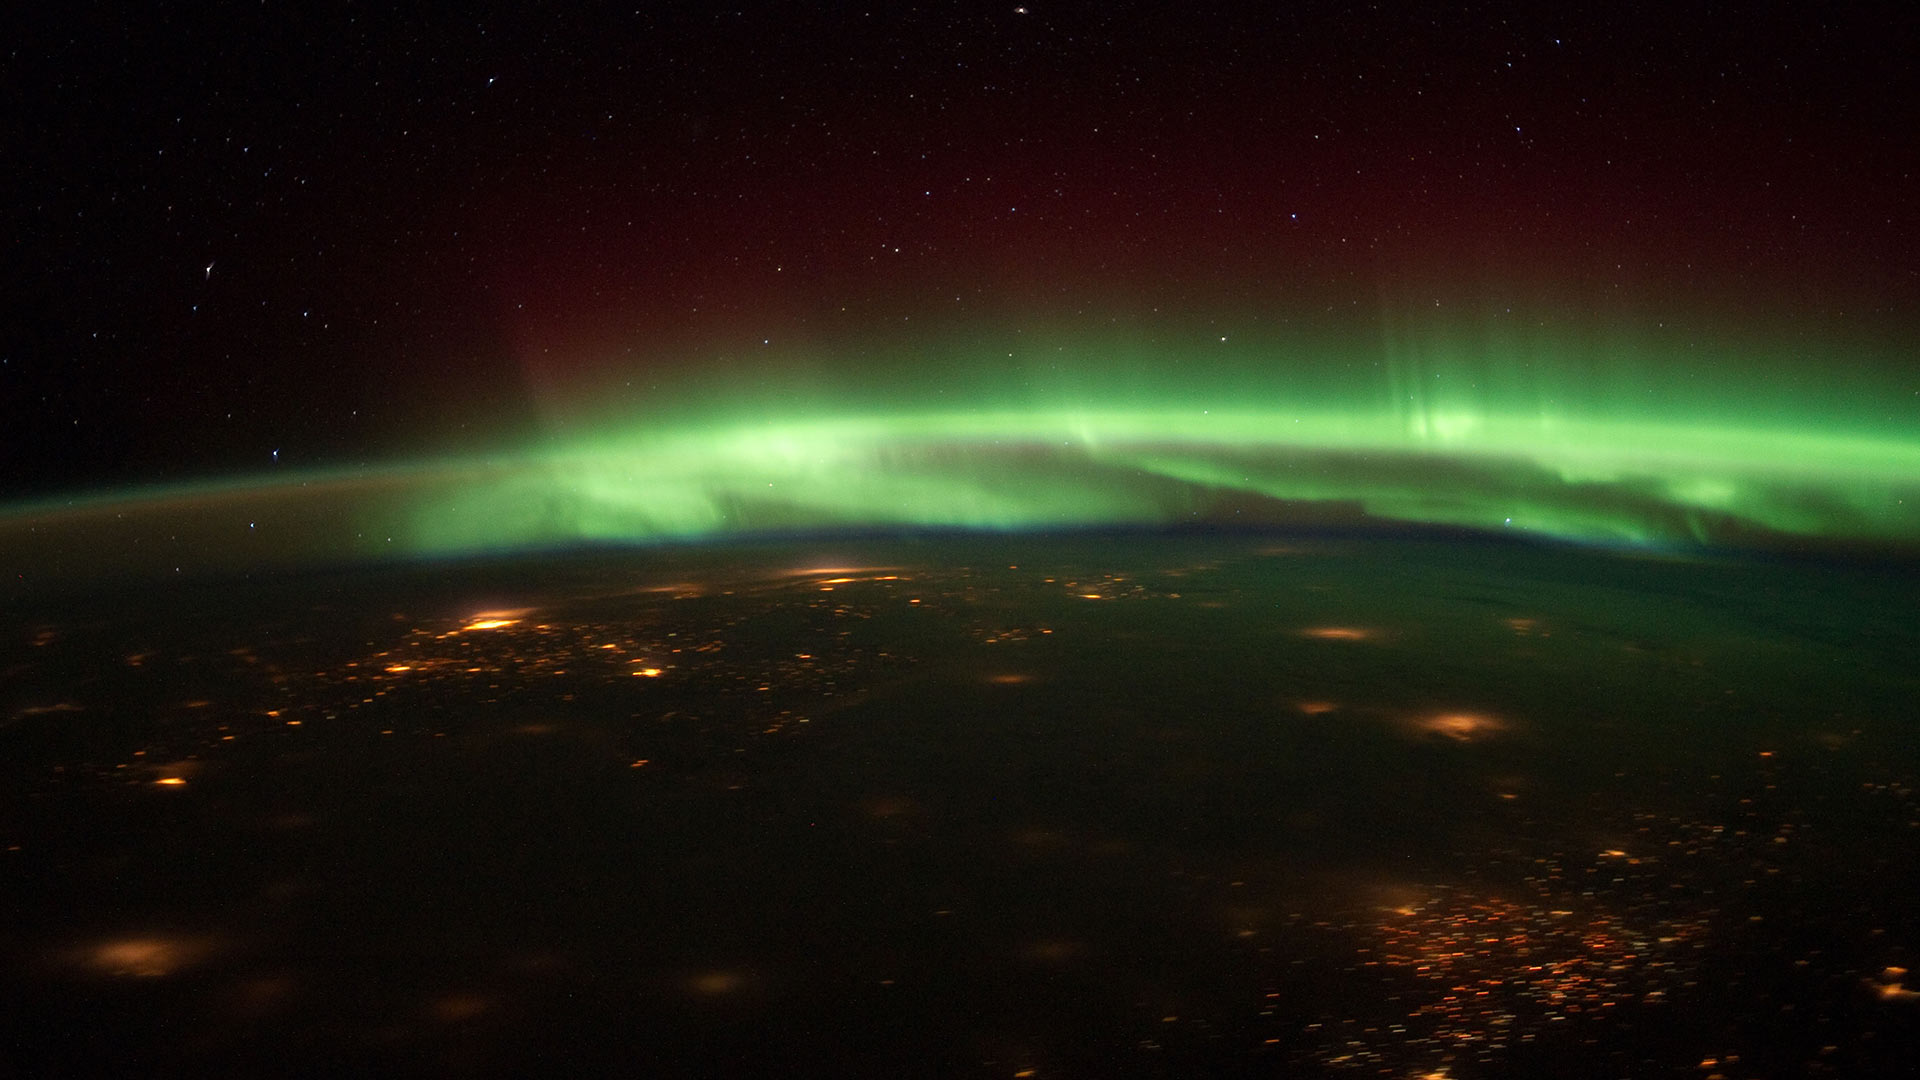 The Aurora Borealis dances over the U.S. Midwest Jan. 25, 2012, from the vantage point of the International Space Station.